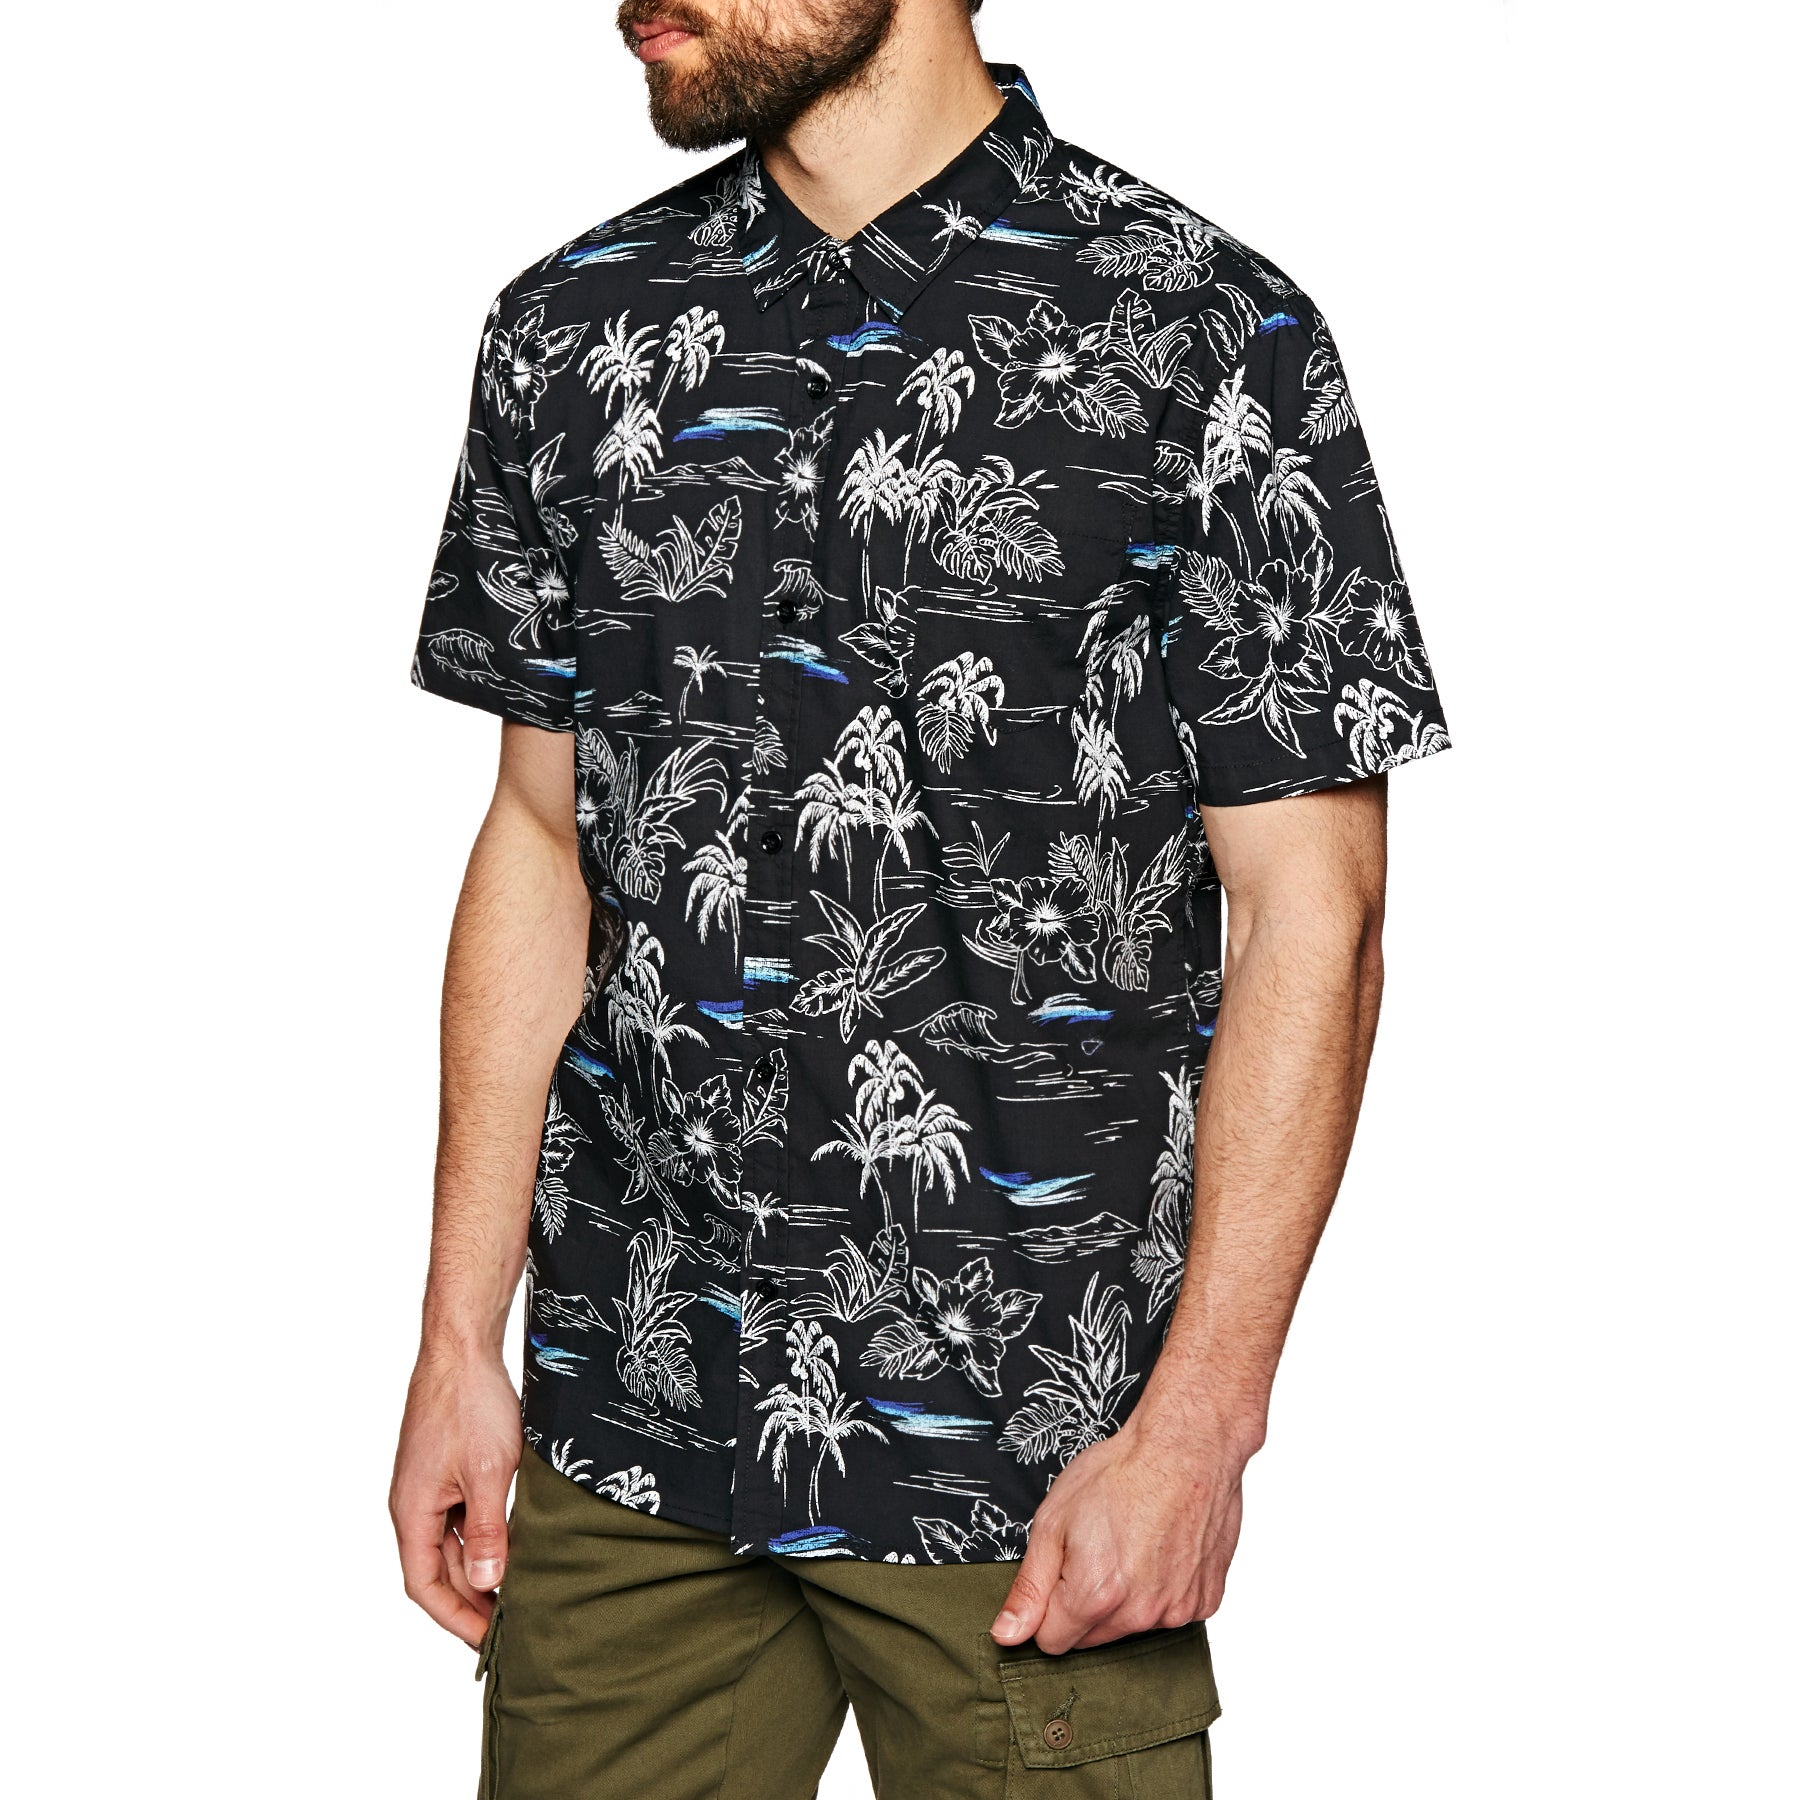 SWELL Inverted Short Sleeve Shirt - Black